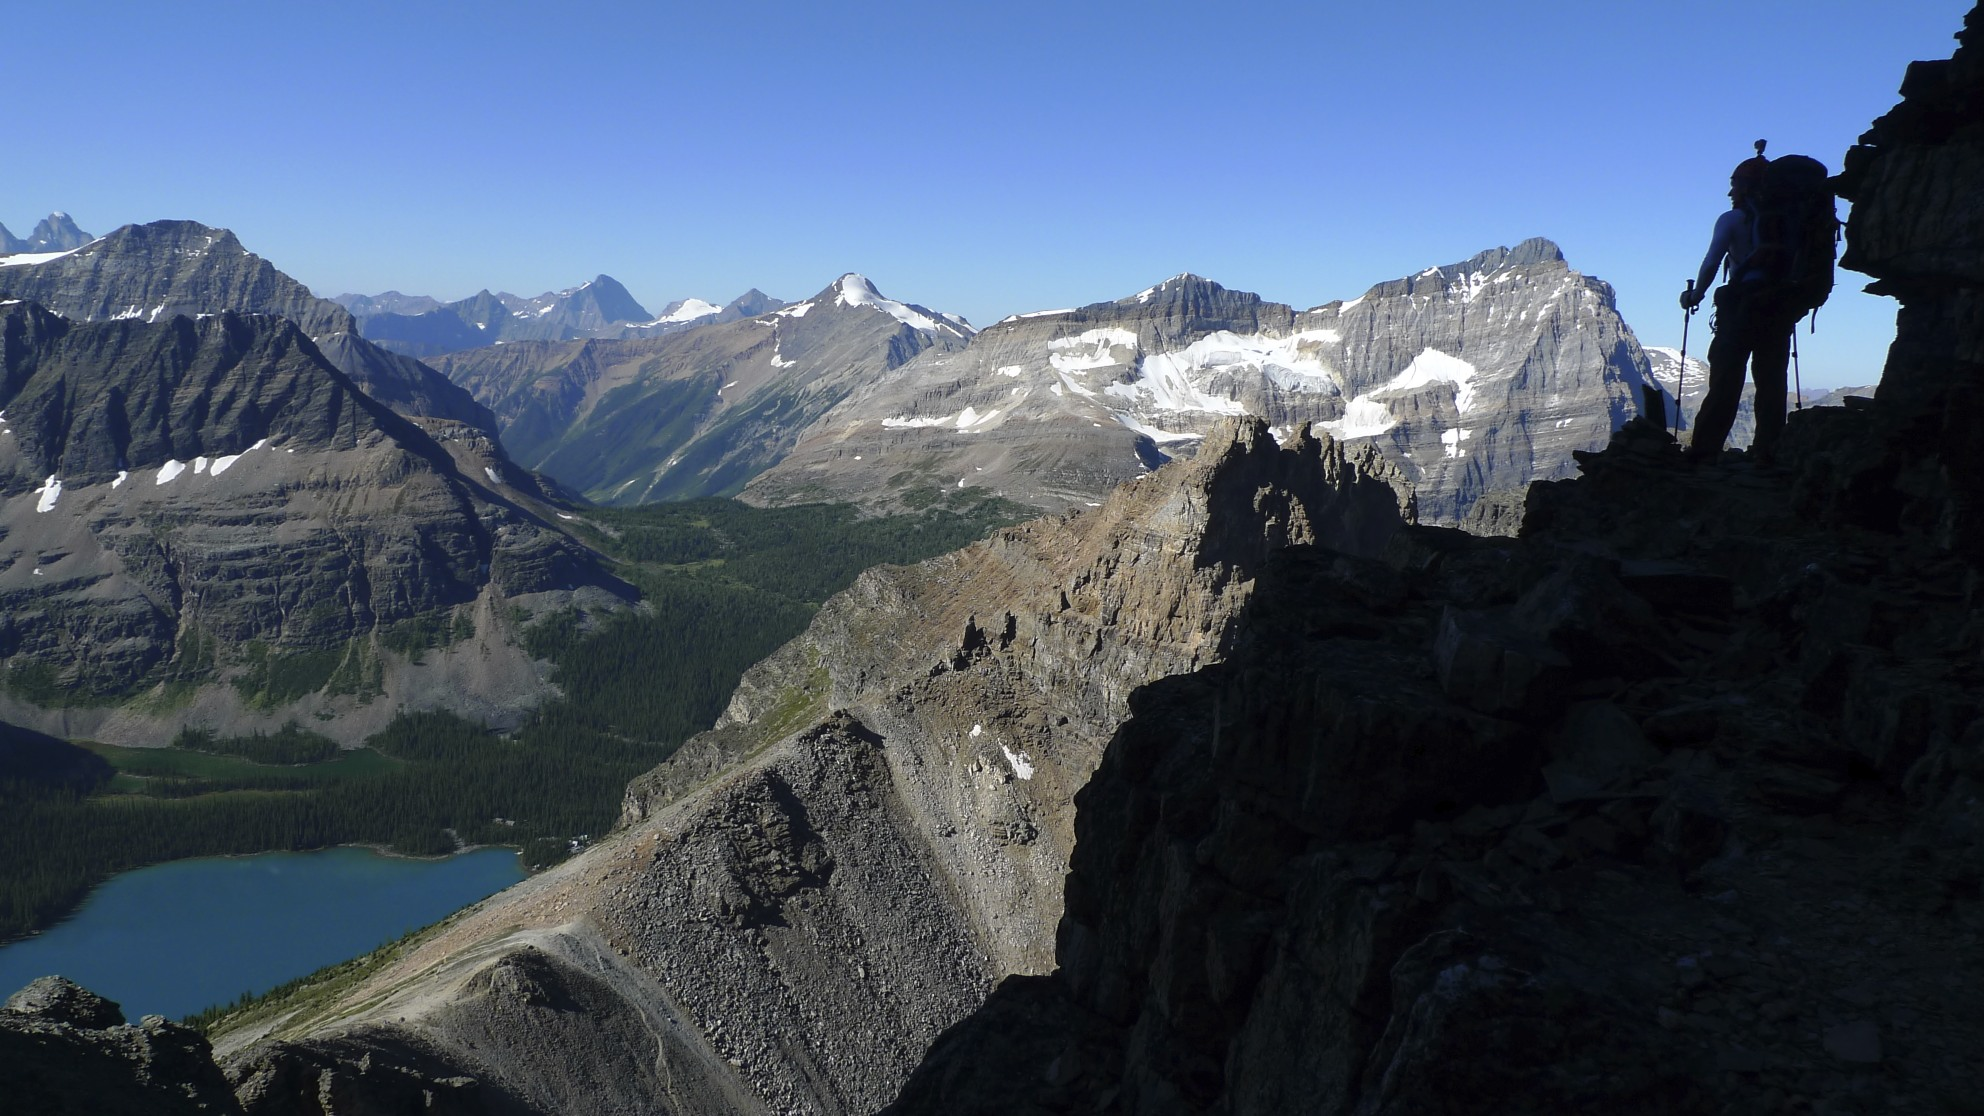 Lake O'Hara from lower slopes of Mt. Huber